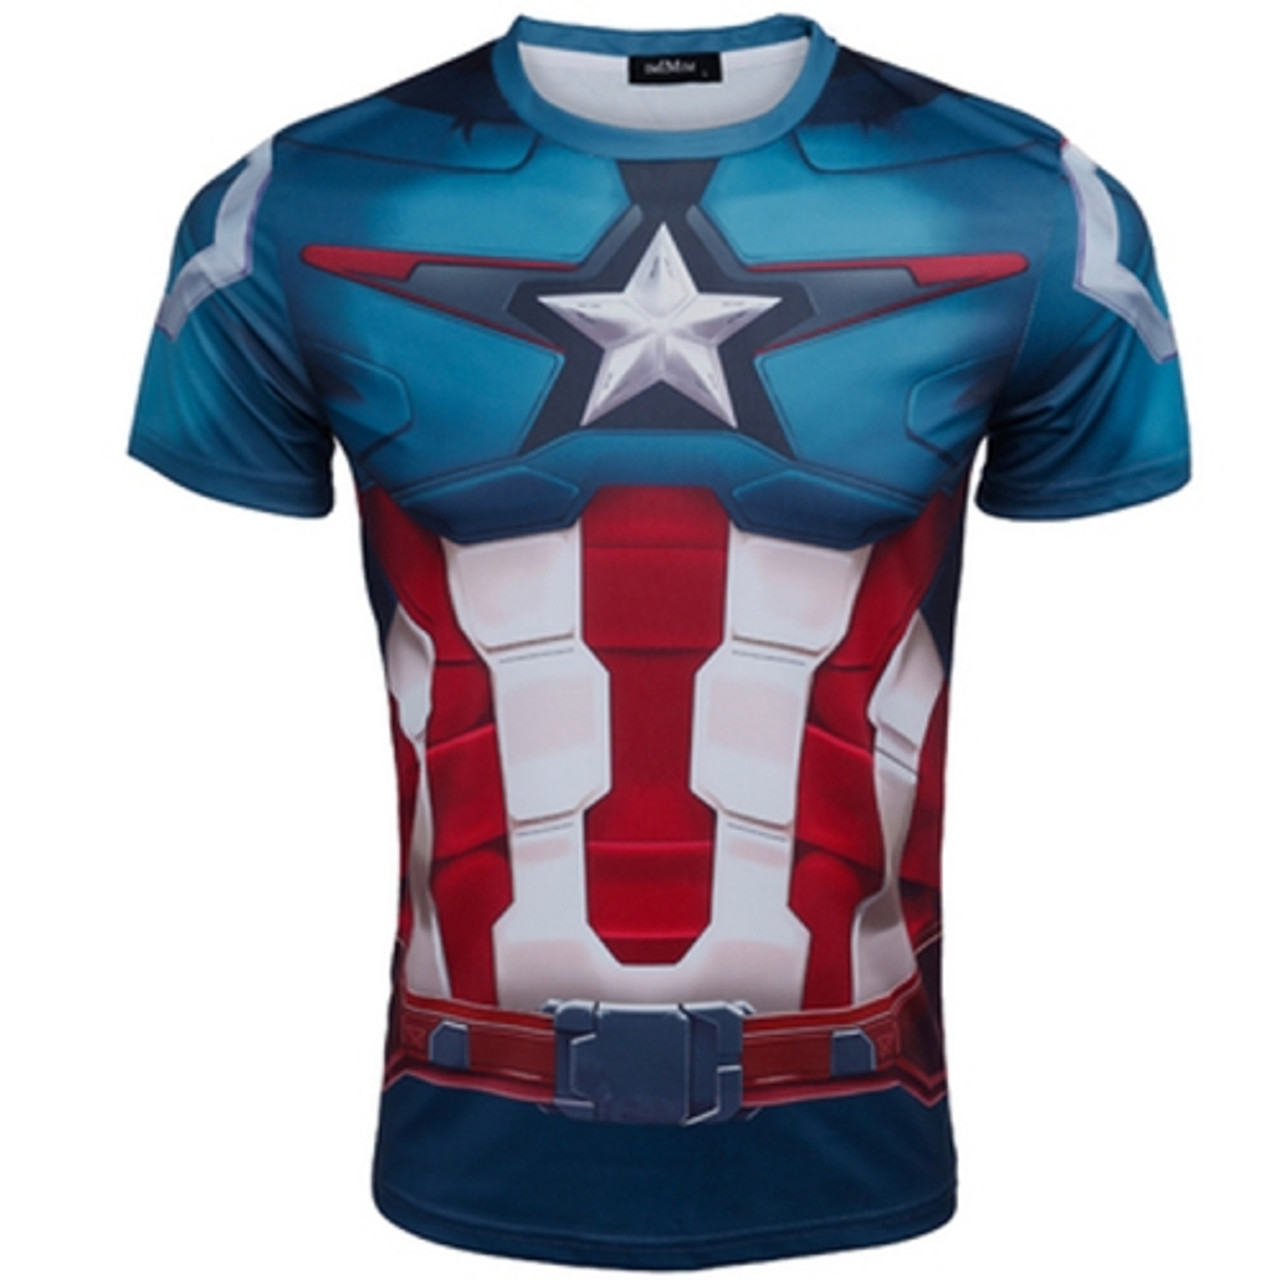 c953fd415874 2016 new Fashion Marvel Armor Iron Man 3 MK42 Superhero t shirt men costume  jersey 3d tshirt camisetas masculinas